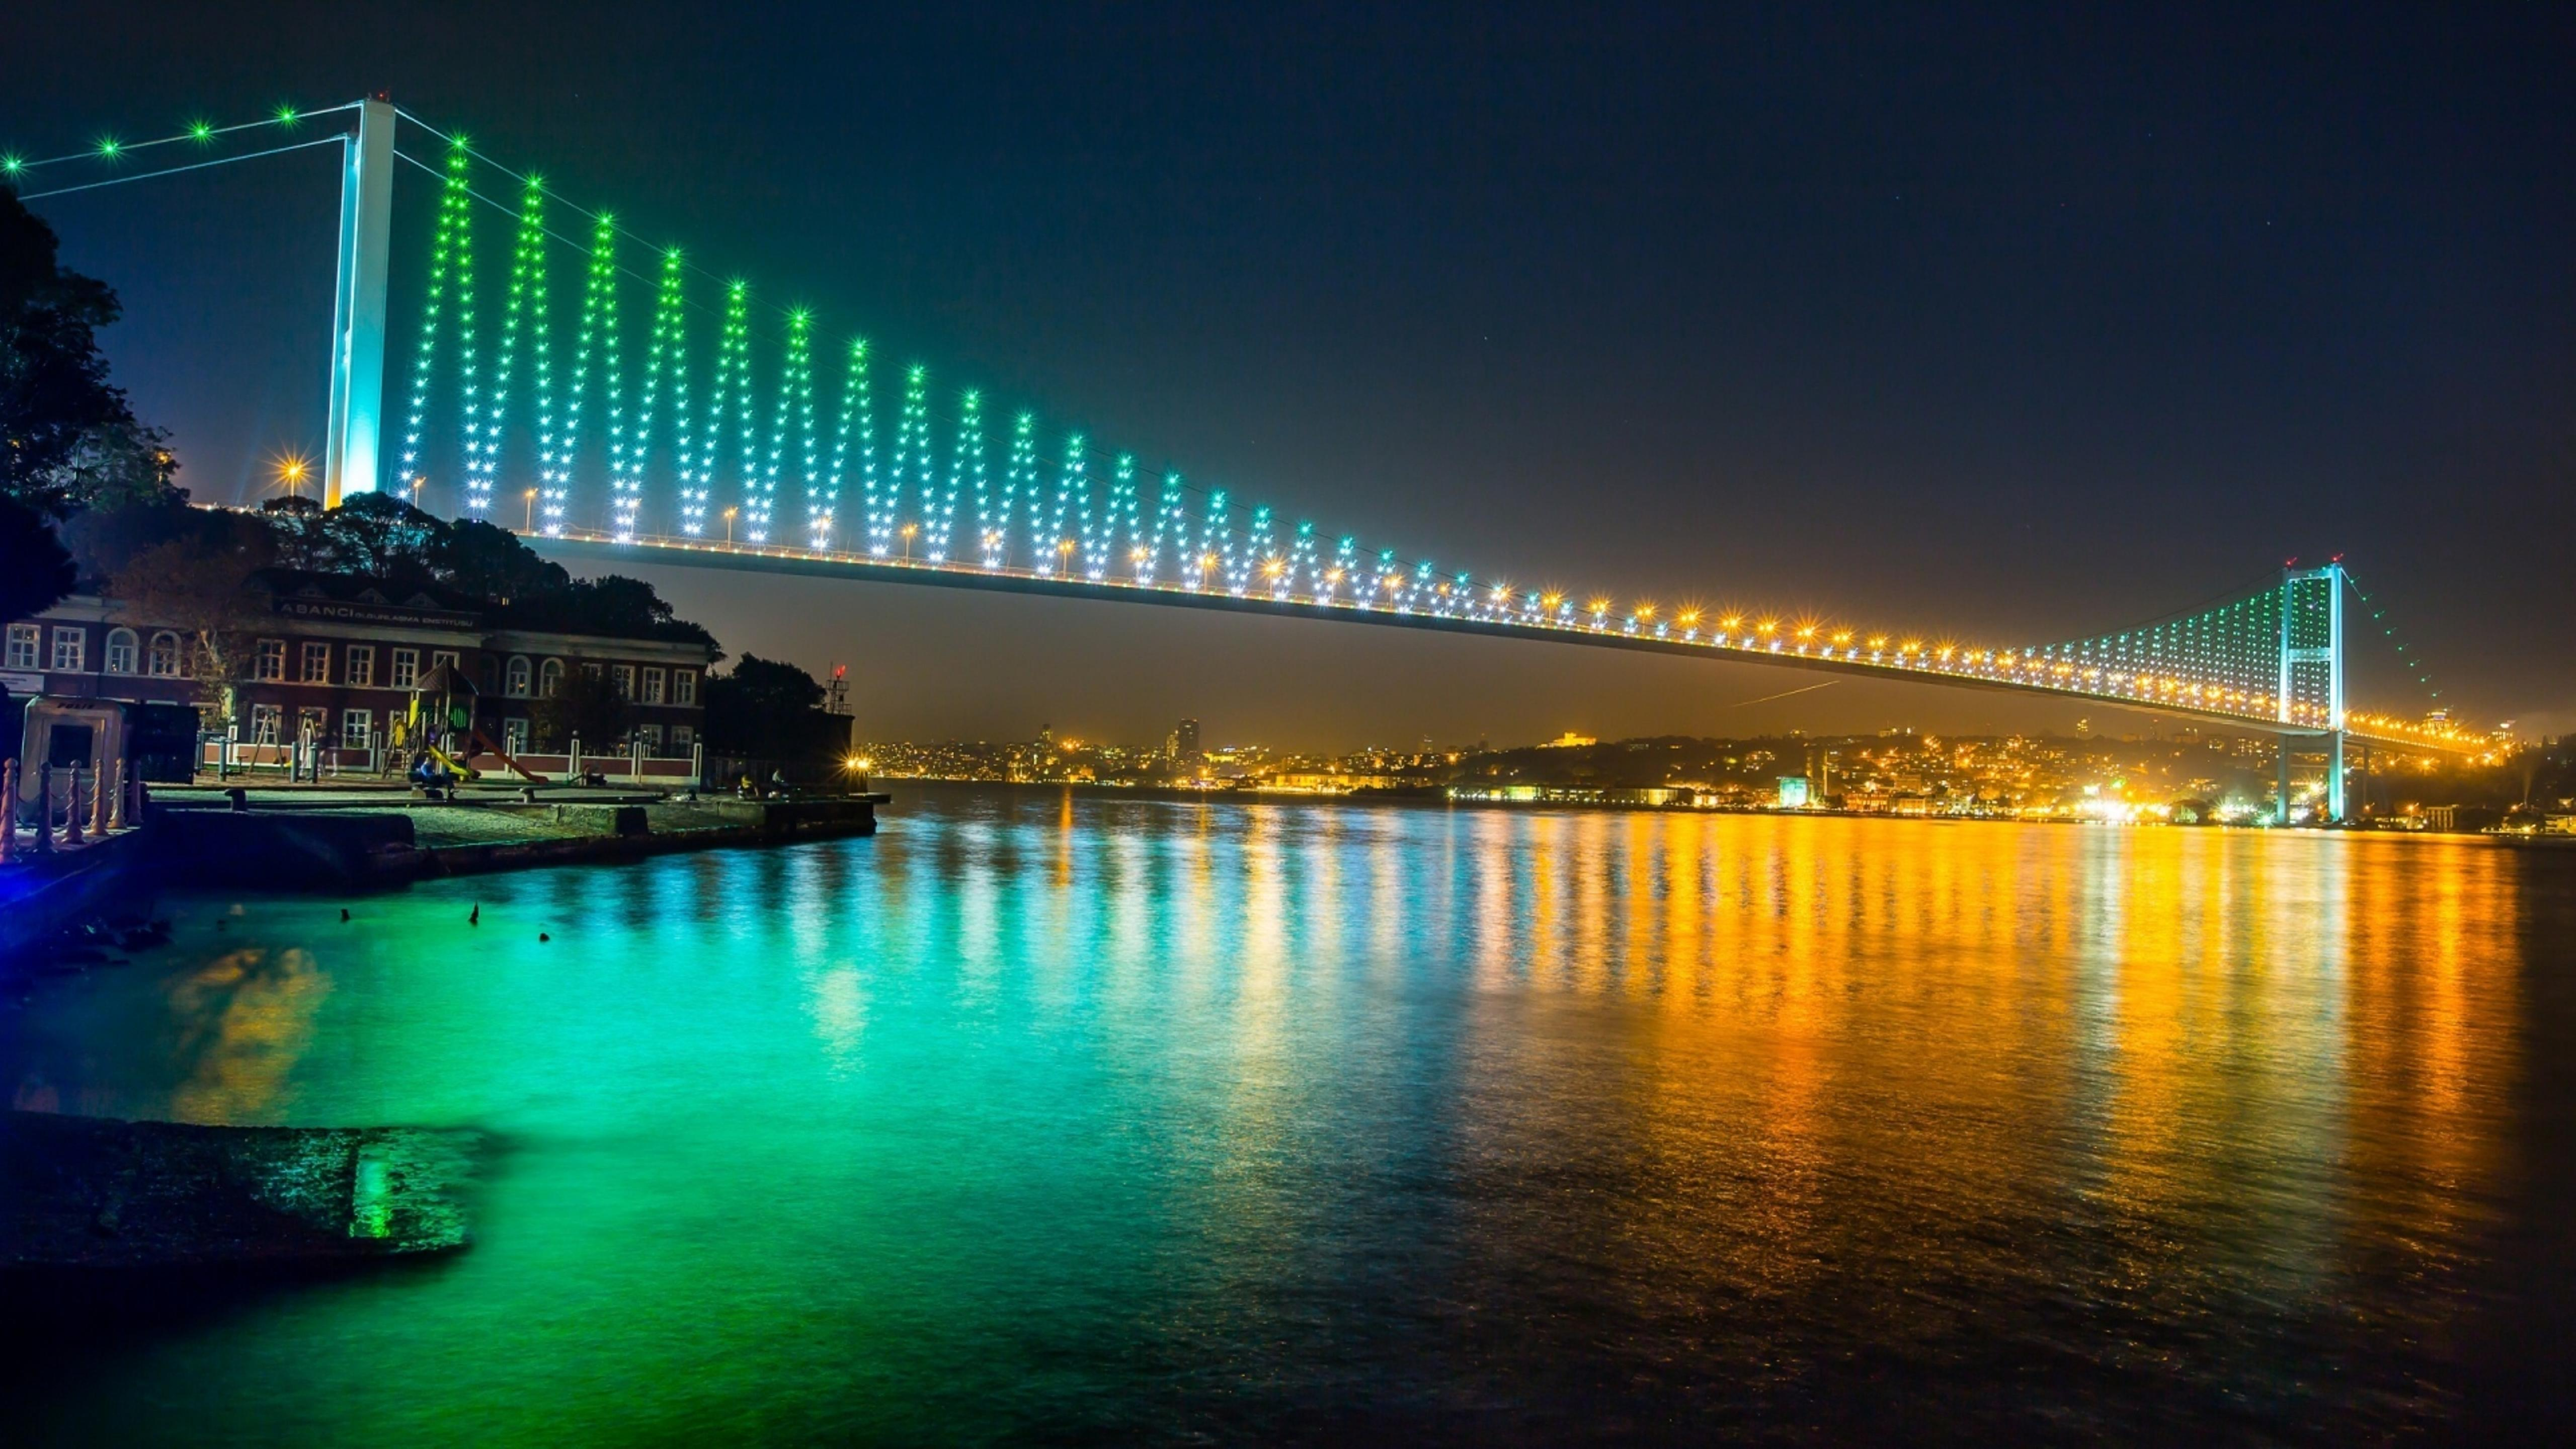 Good Wallpaper Night Colorful - colorful-bosphorus-bridge-from-istambul-in-night-5120x2880  You Should Have.jpg